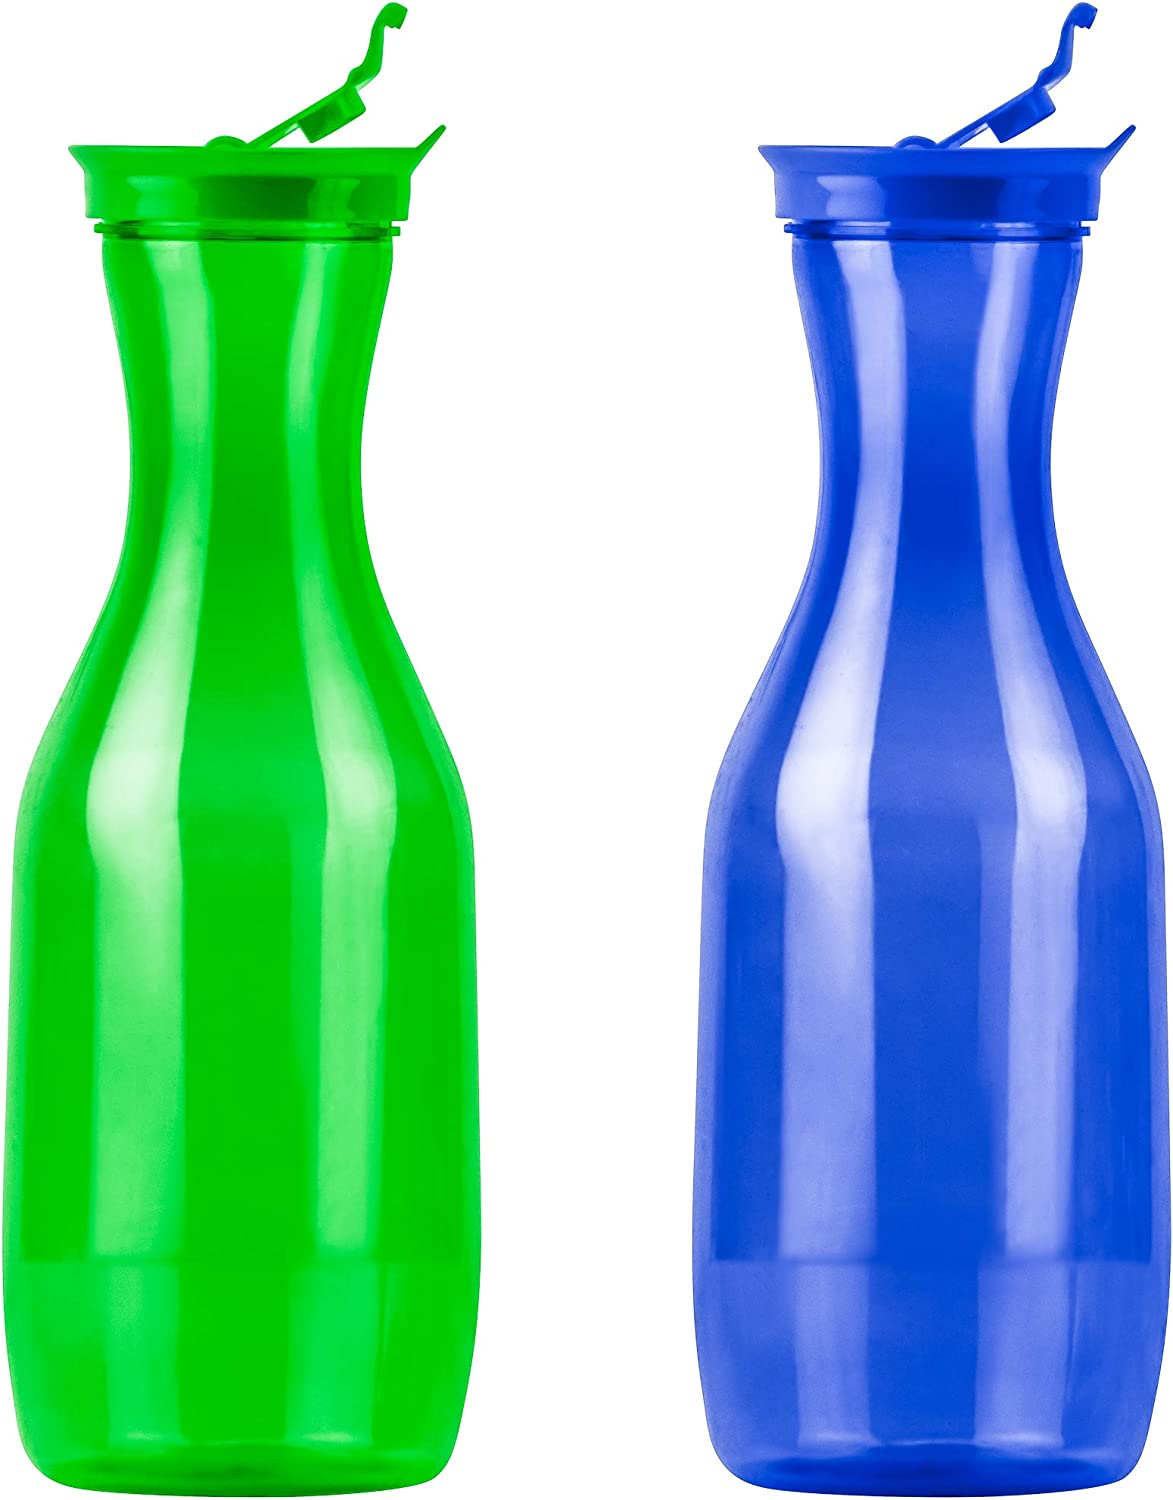 DecorRack 2 Large Water Carafes, Bottles with Flip Top Lid, 50 Oz Each, Plastic Juice Pitcher, Decanter, Jug, Serve Fridge Cold Iced Tea, for Outdoors, Picnic, Parties, Blue-Green (2 Pack)